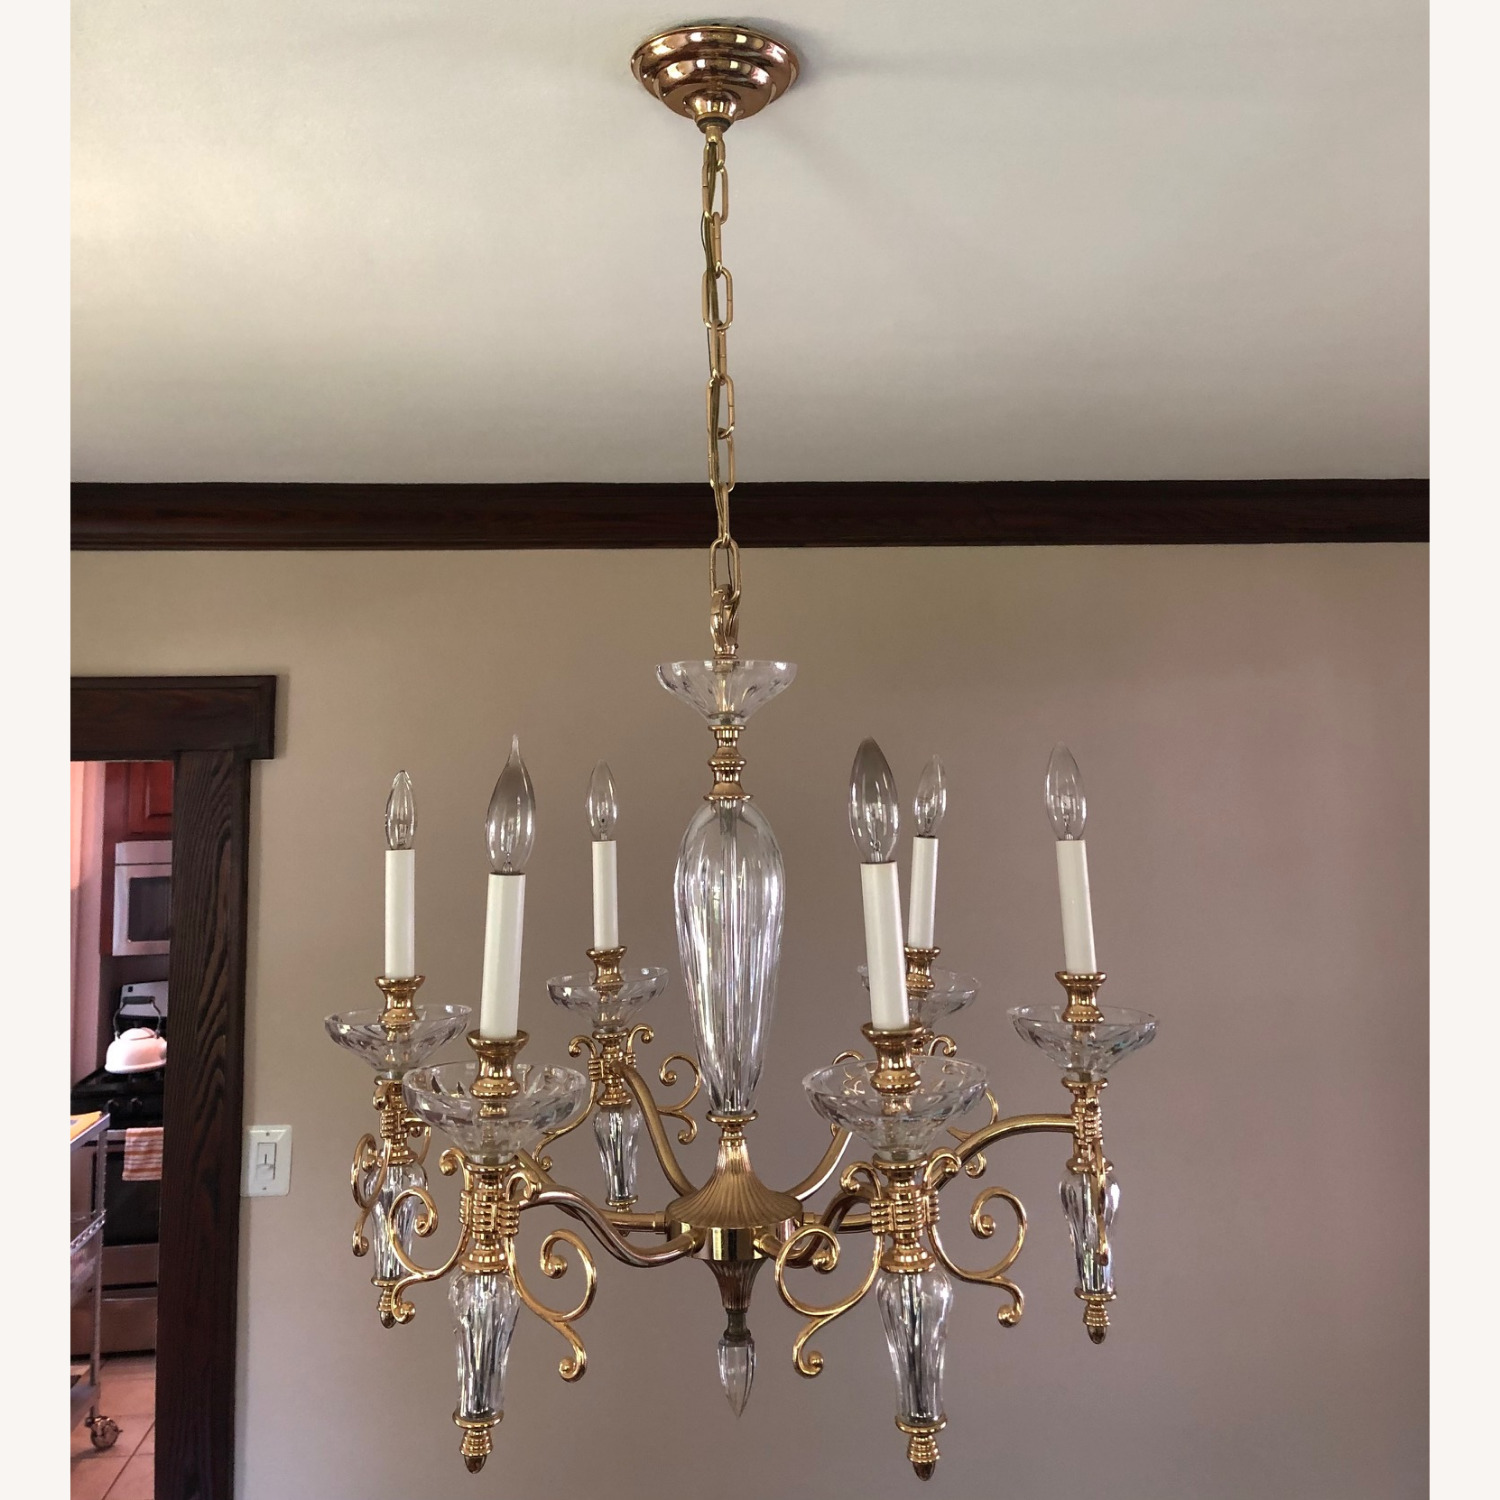 Waterford Crystal & Brass Chandelier - image-1